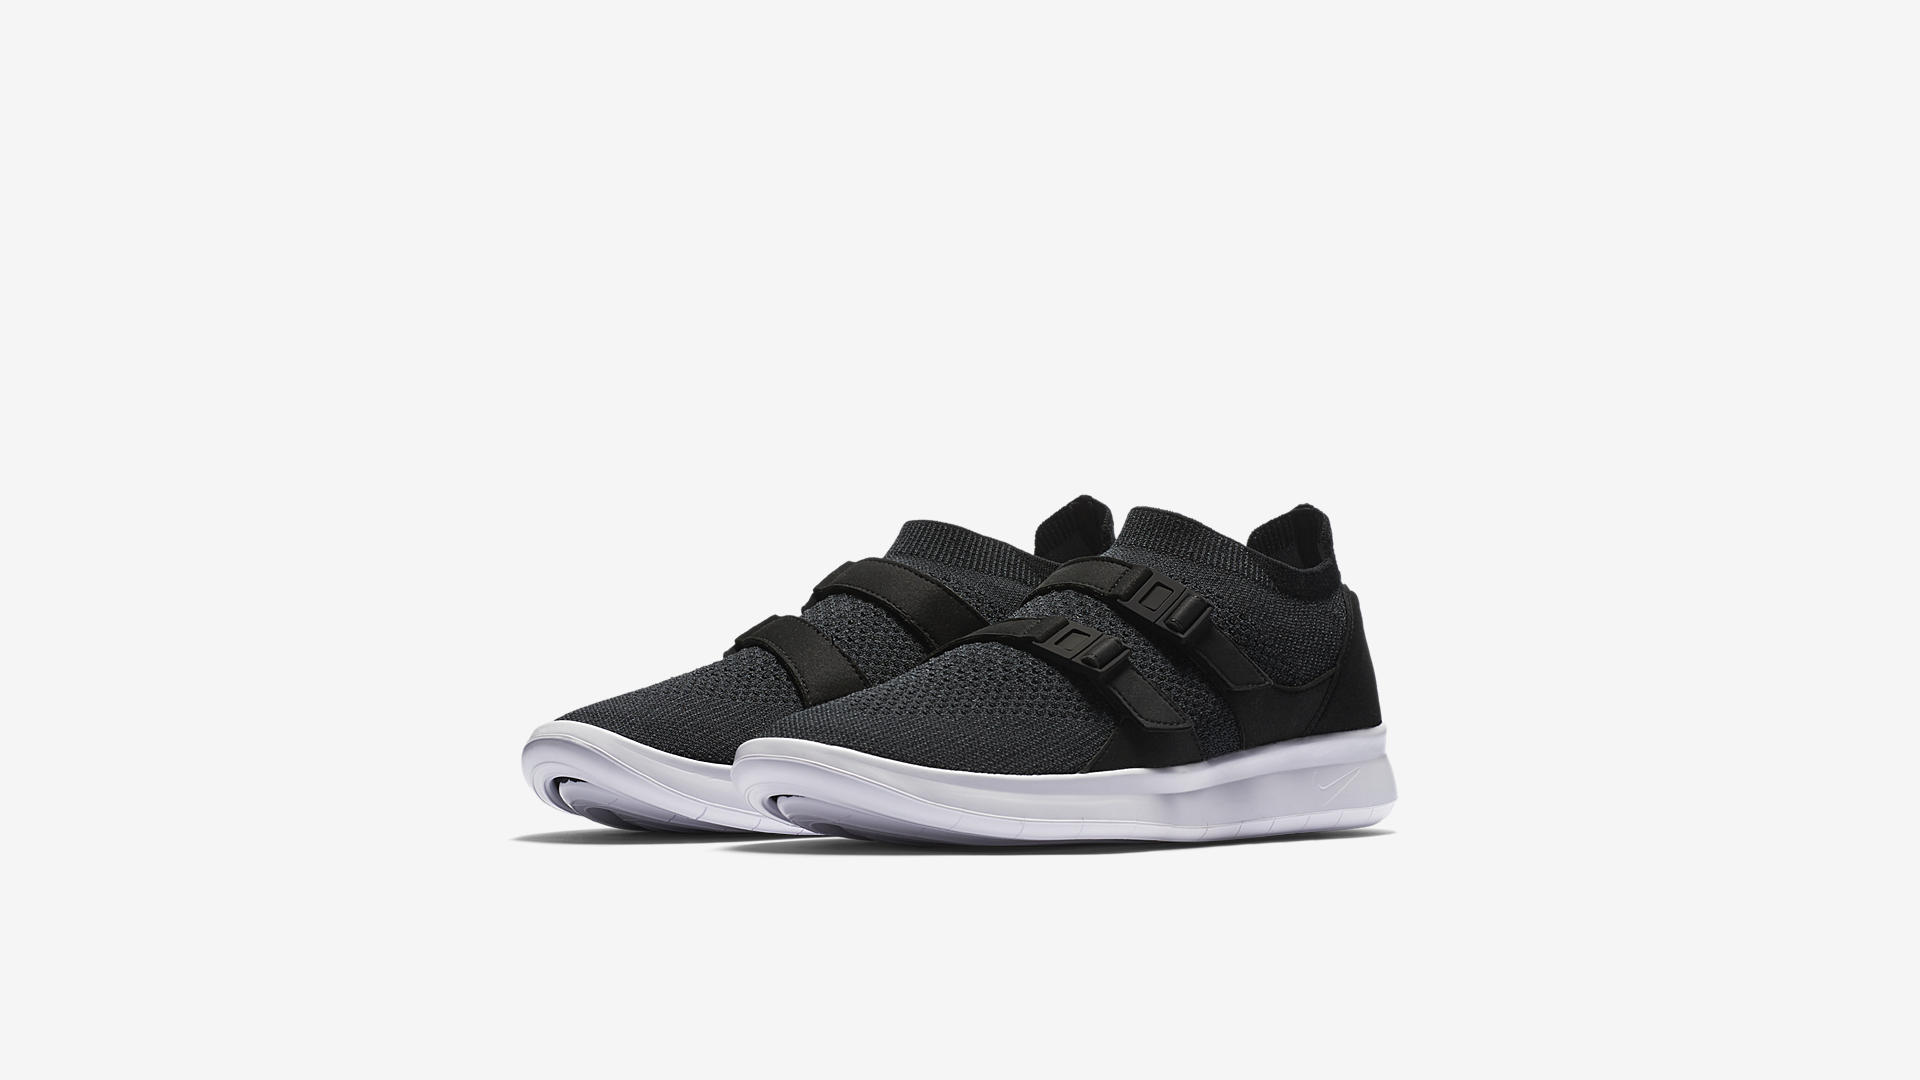 Nike Air Sock Racer Ultra Flyknit Anthracite 898022 001 4